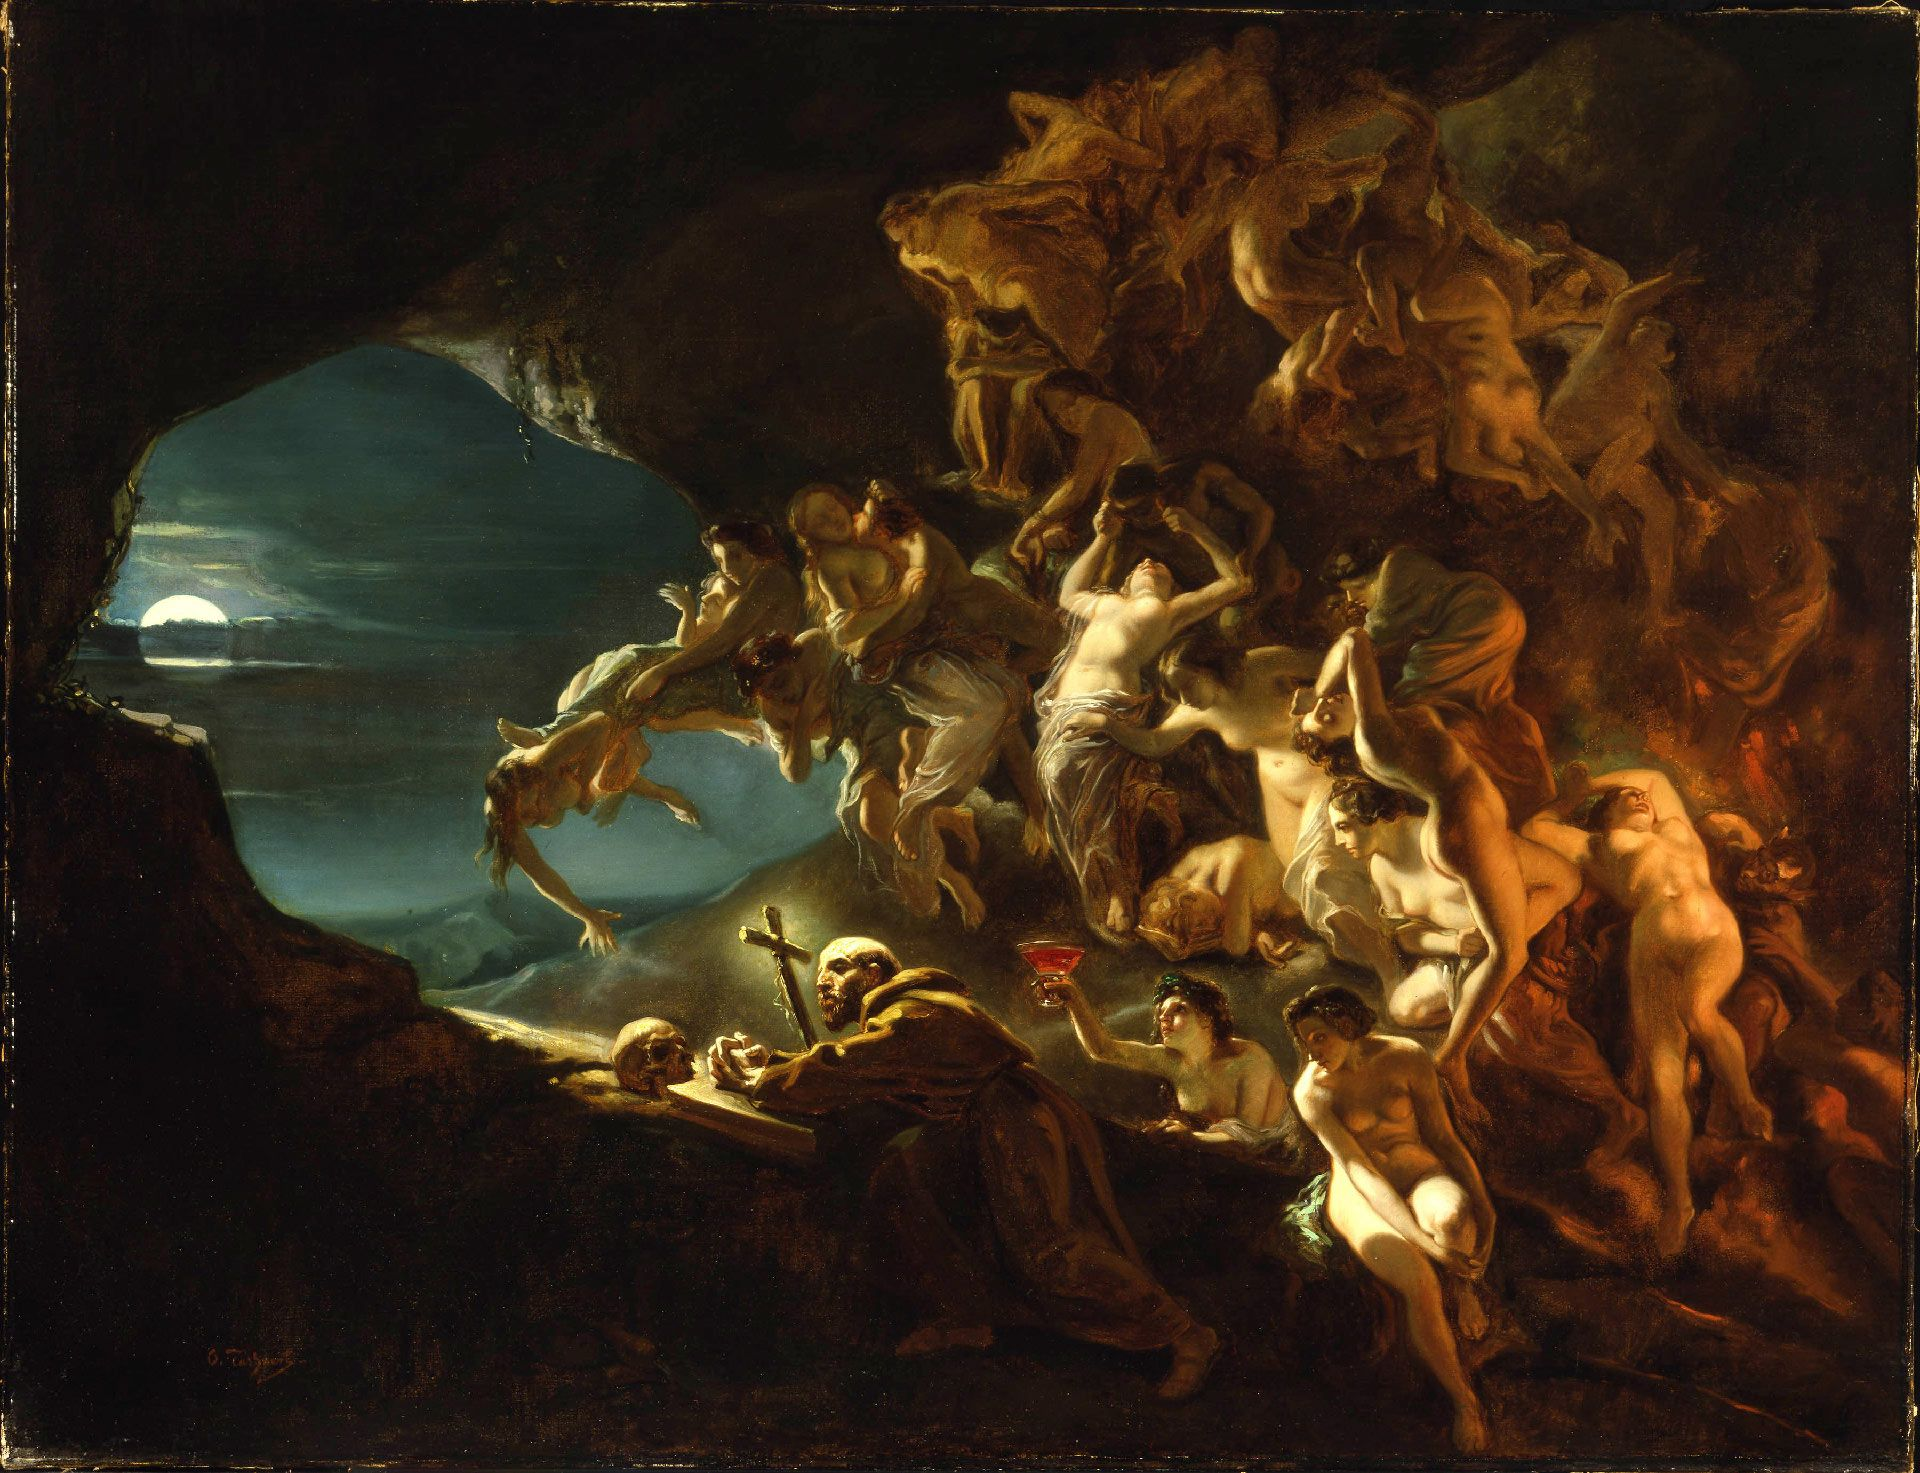 Octave Tassaert, The Temptation of Saint Hilarion, about 1857, oil on canvas, 111.4 x 144.3 cm. Purchase, gift of Mr. and Mrs. Michal Hornstein.